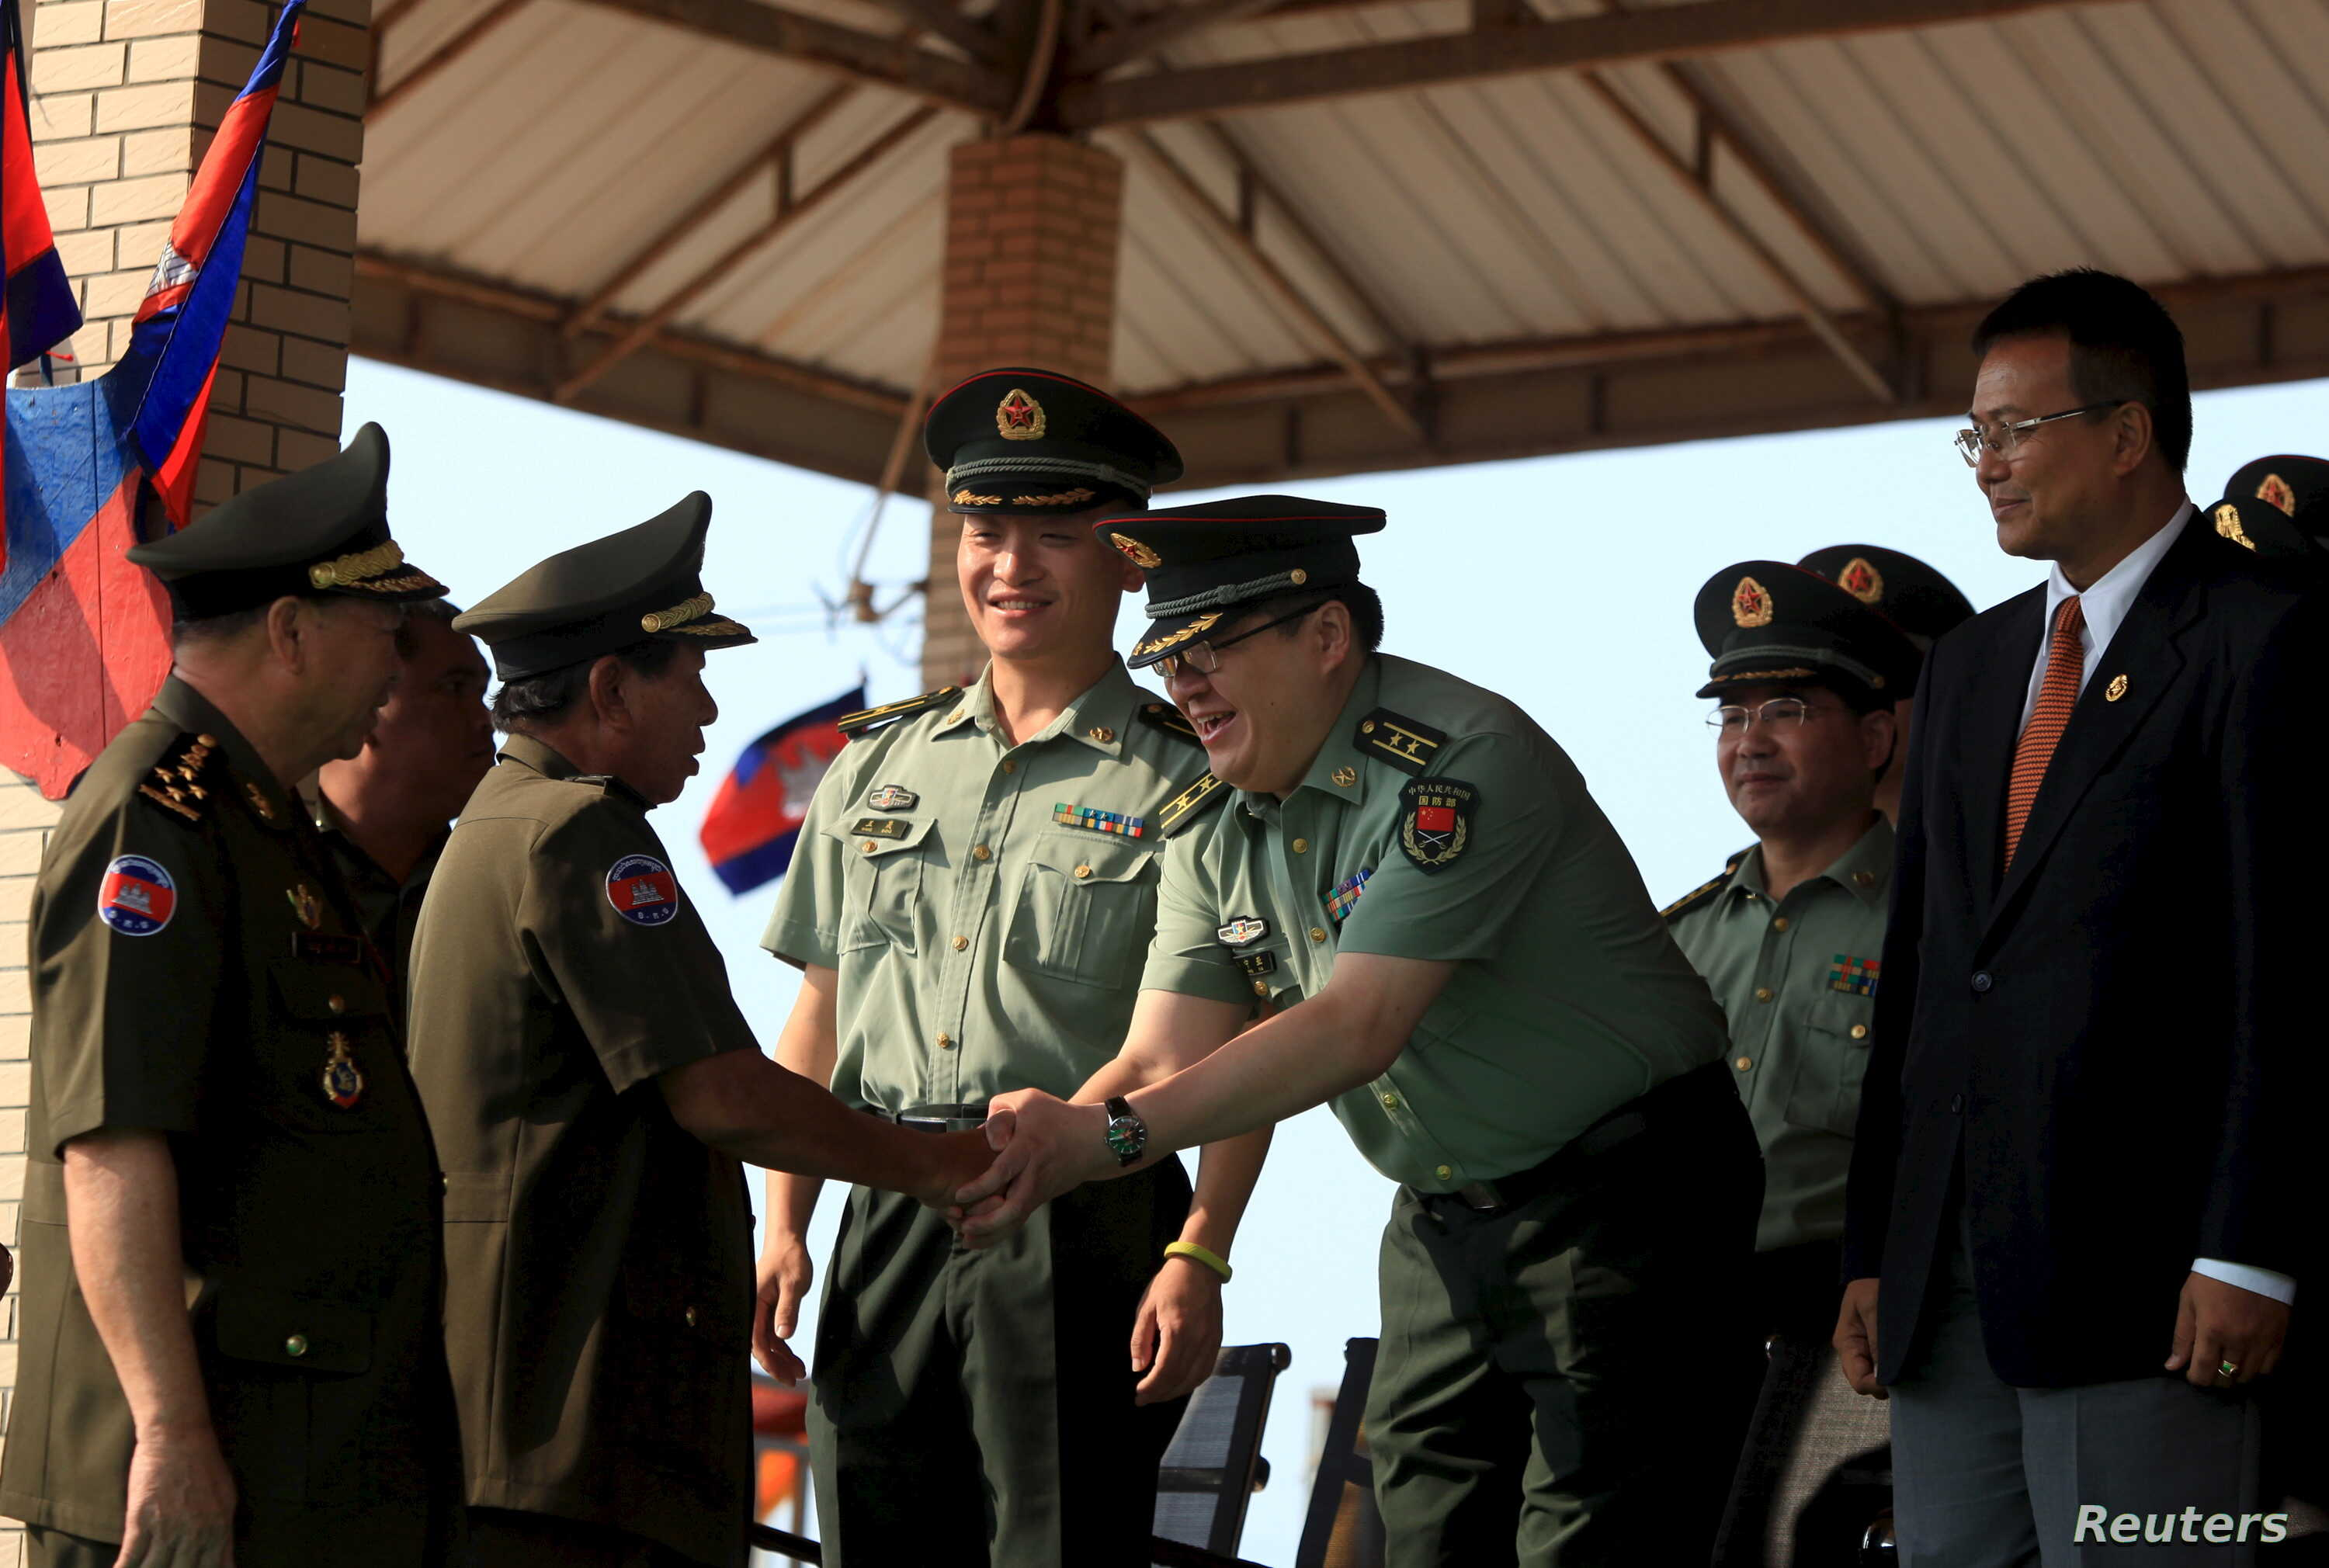 FILE - Cambodian Defense Minister Tea Banh, second left, shakes hands with a Chinese army adviser during a graduation ceremony at the Army Institute in Kampong Speu province, March 12, 2015.